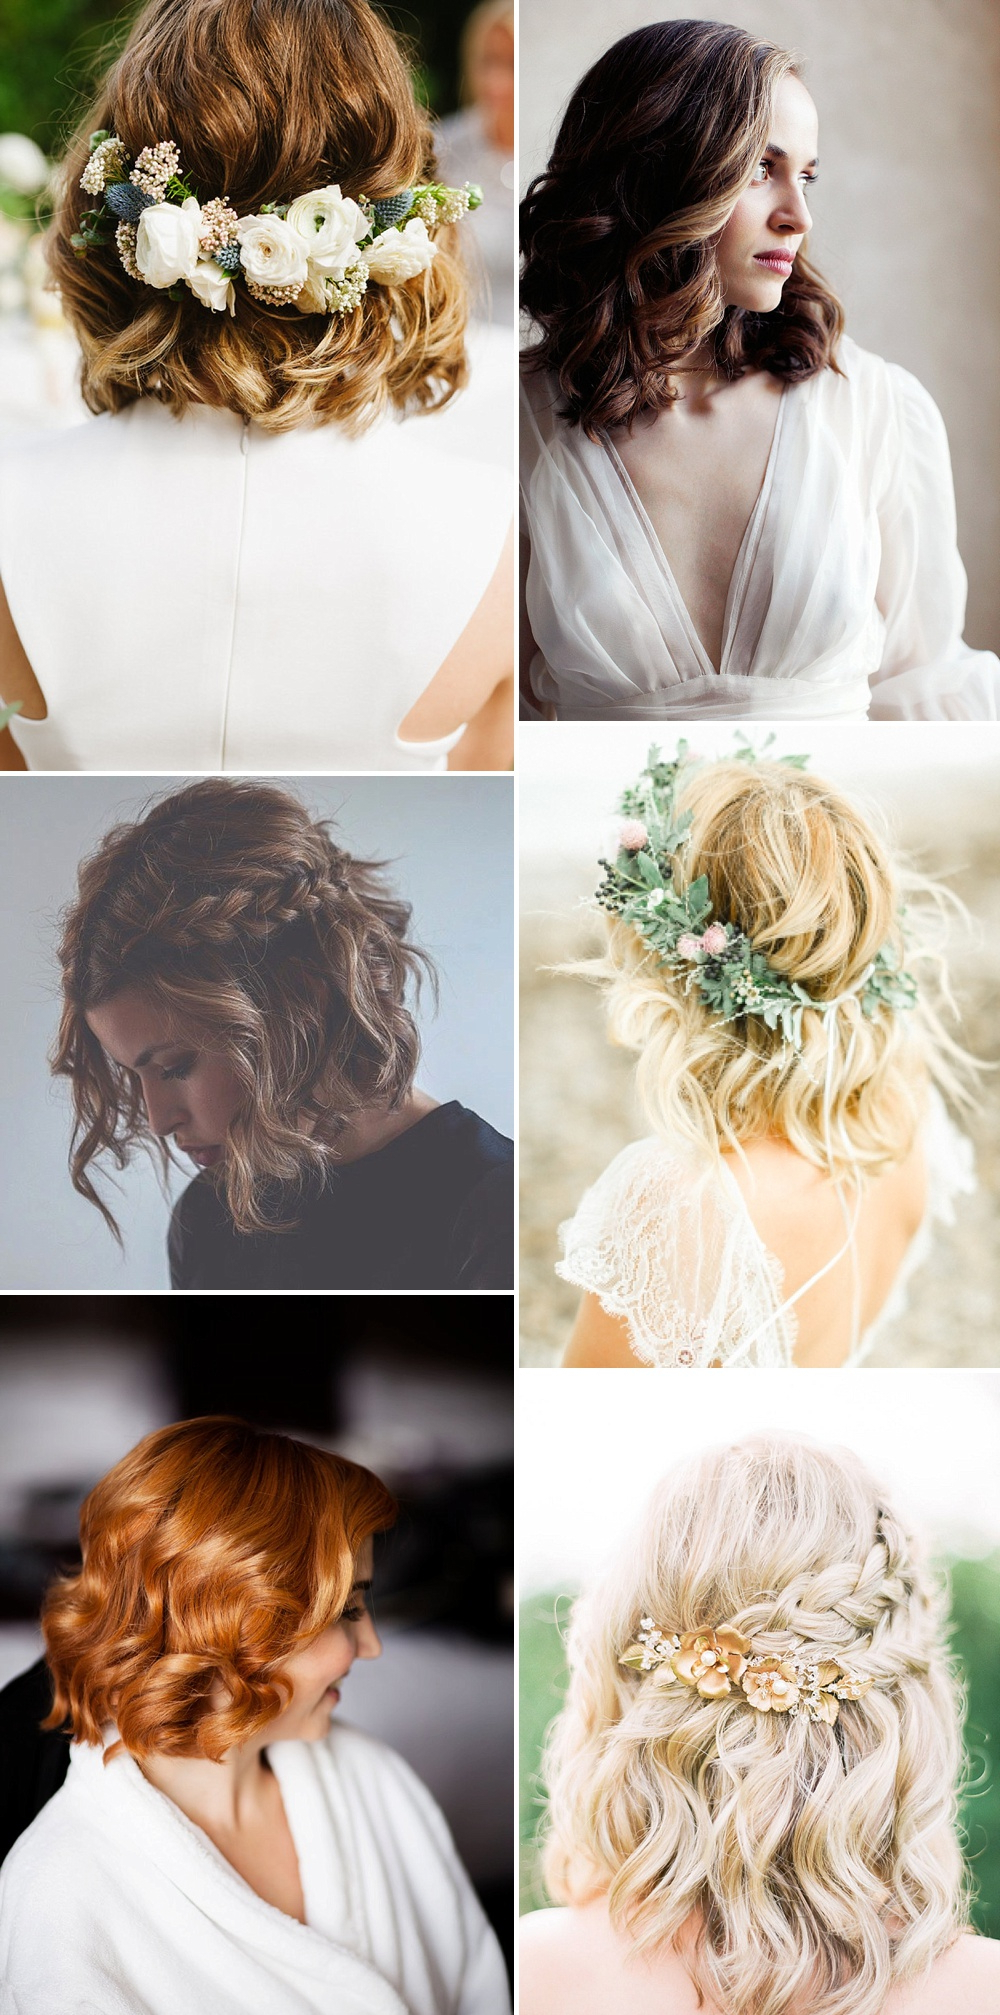 Wedding Hair Ideas For Stylish Brides & Trends For 2017 In Well Known Short And Sweet Hairstyles For Wedding (Gallery 6 of 20)